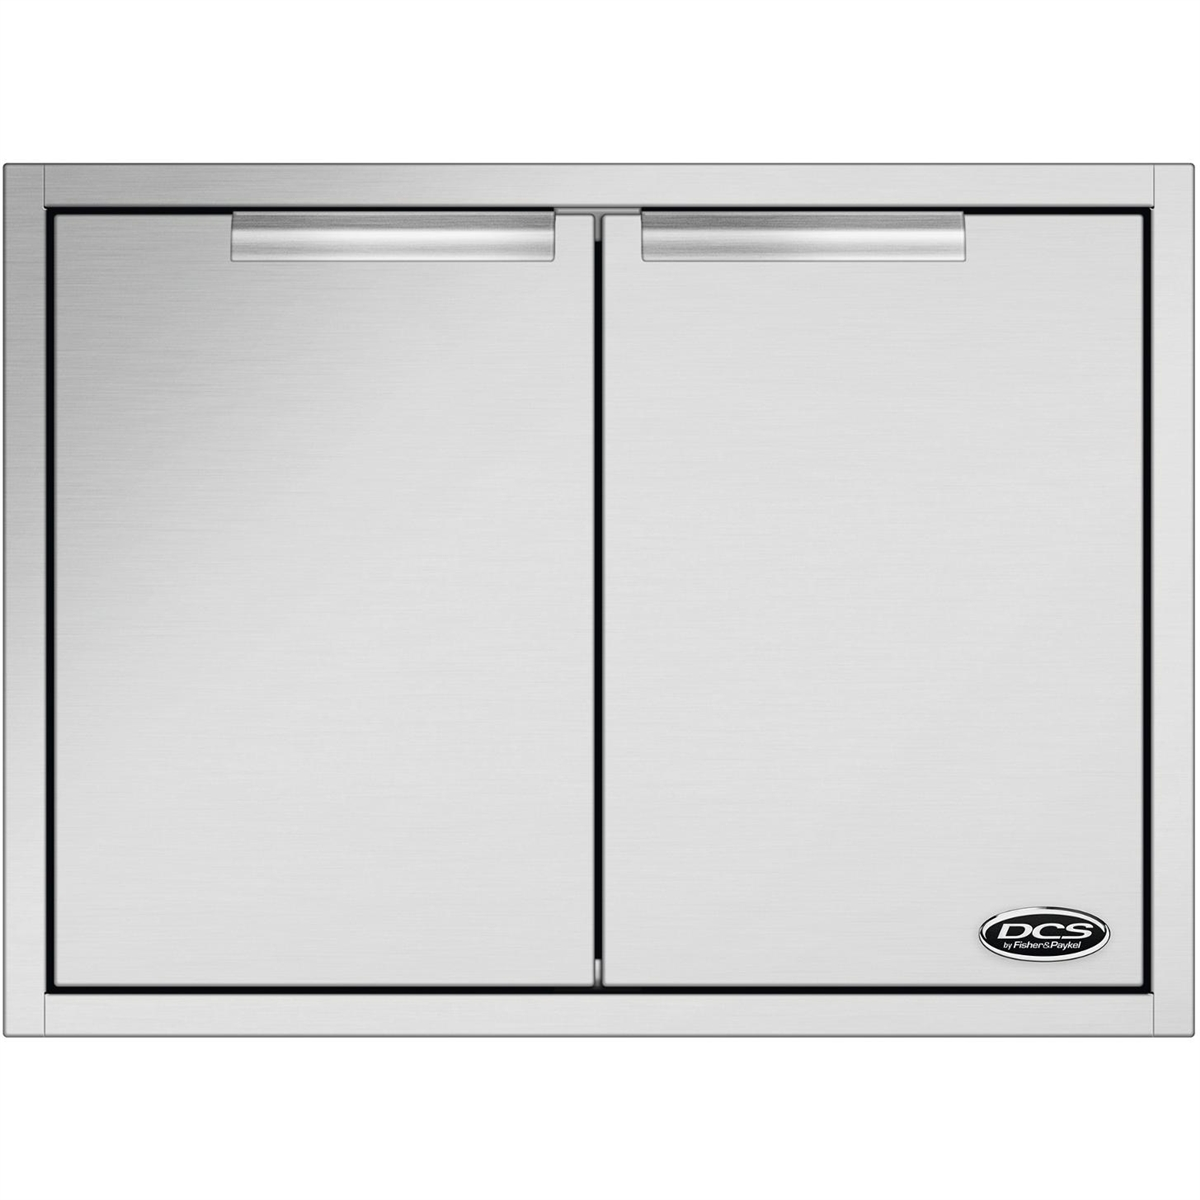 DCS 30 inch Access Drawers for Built In Grills